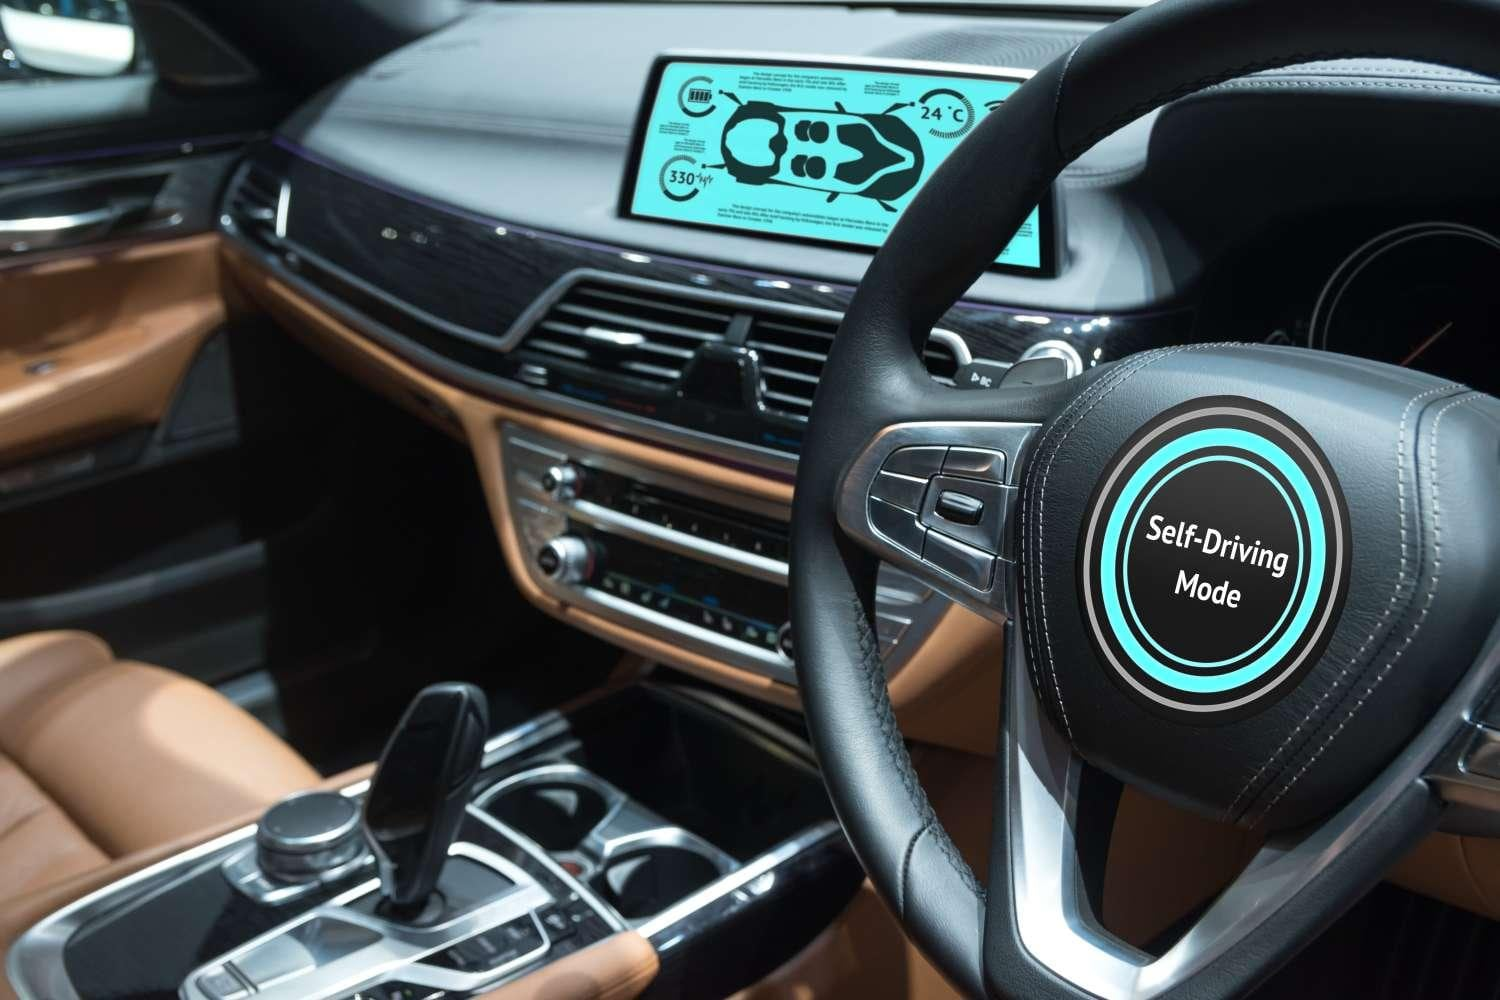 Smart car with empty driver's seat in self-driving mode